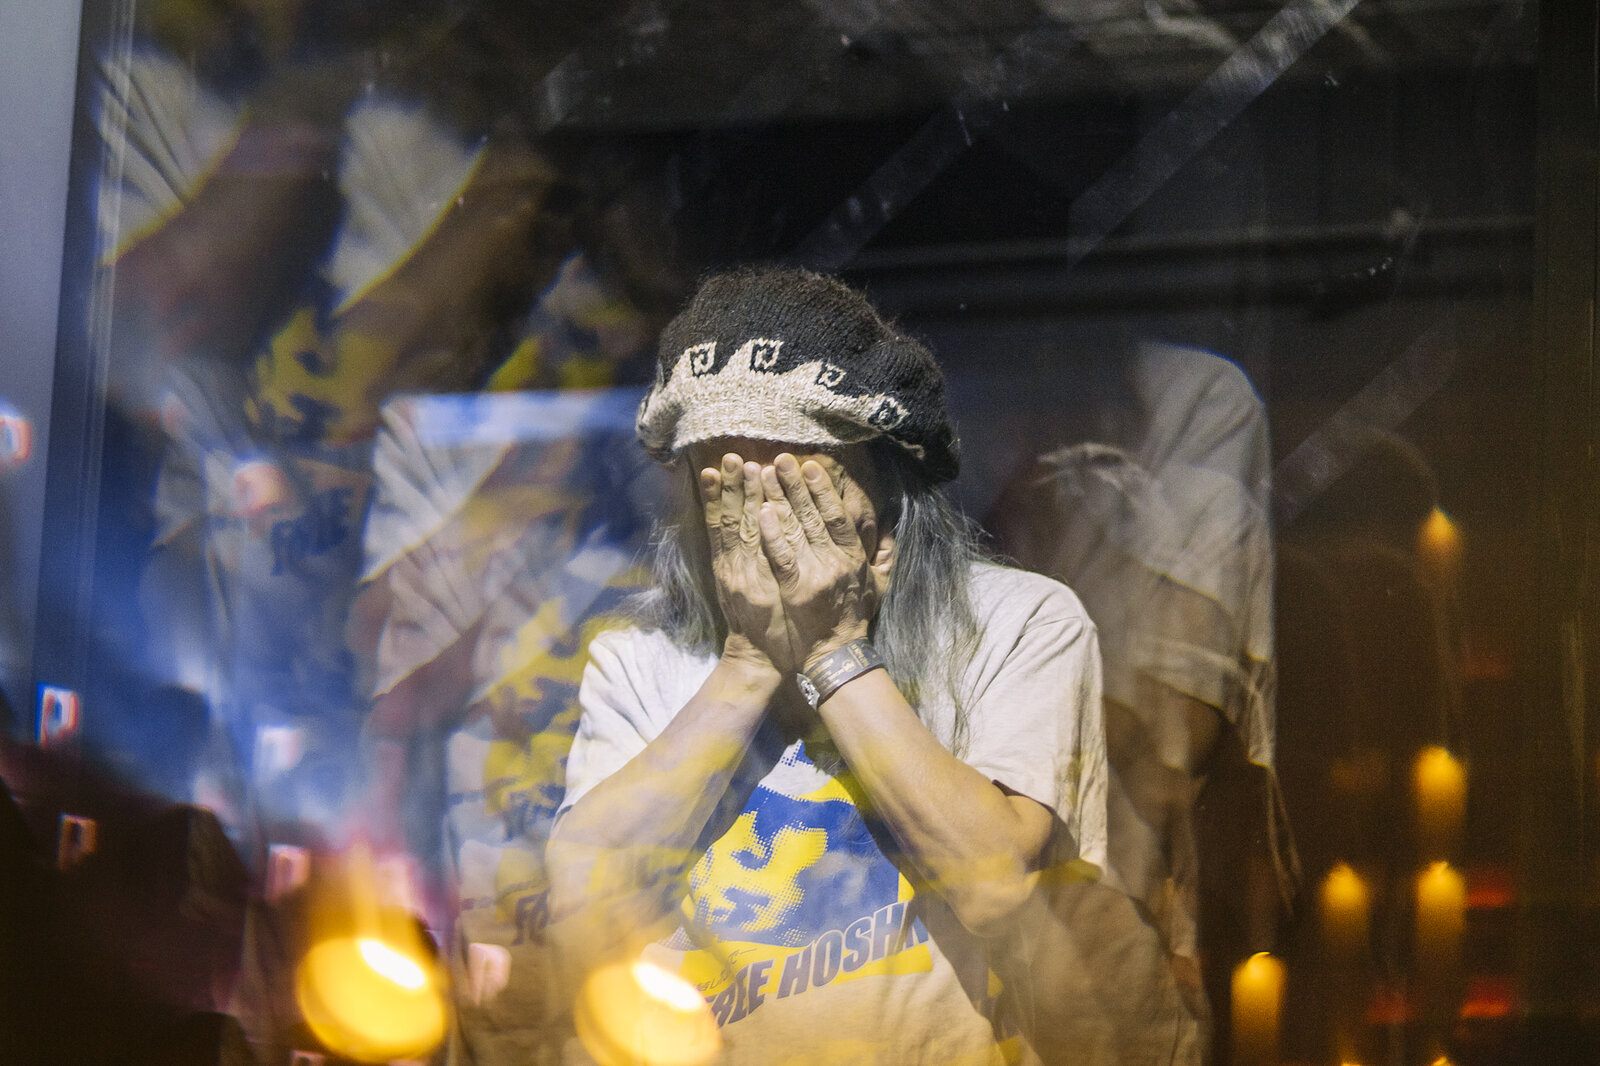 Damo Suzuki @ Mexico -  May 18 2019. Photo by  David Barajas